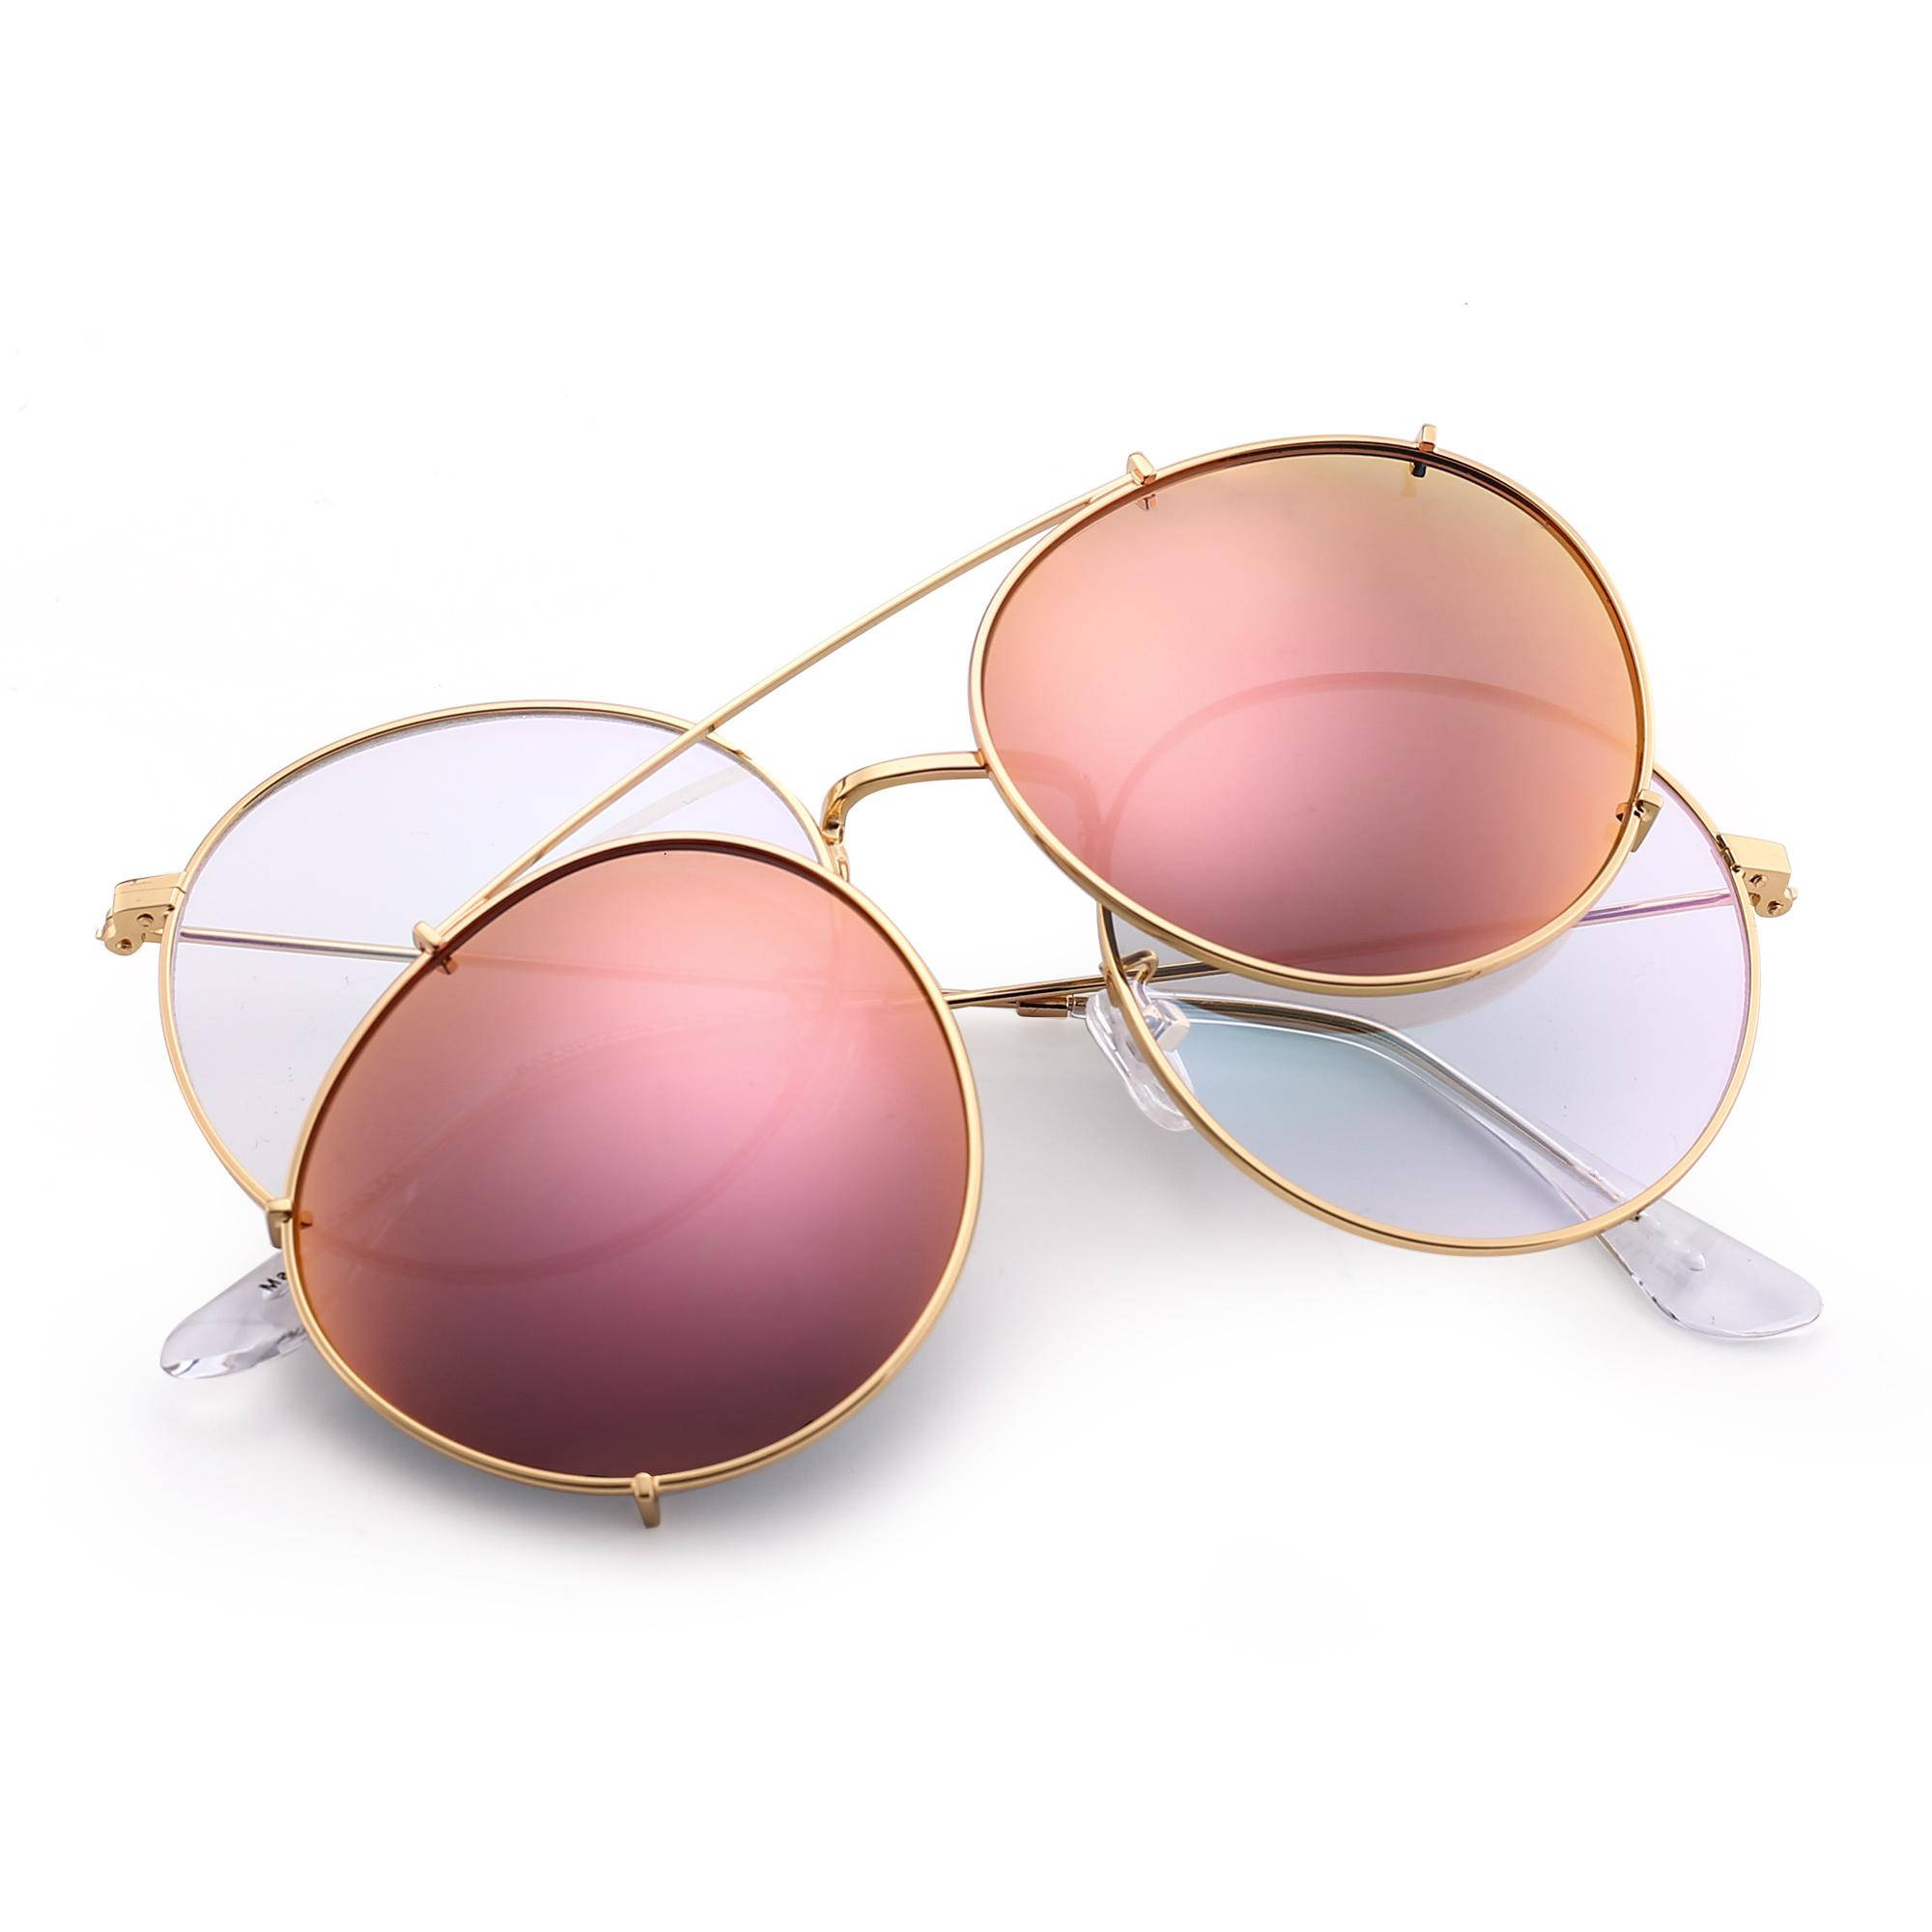 Luxury-SteamPunk Vintage Round Style Polarized Sunglasses Clip On Lens Removable Brand Designer Sun Glasses Oculos De Sol